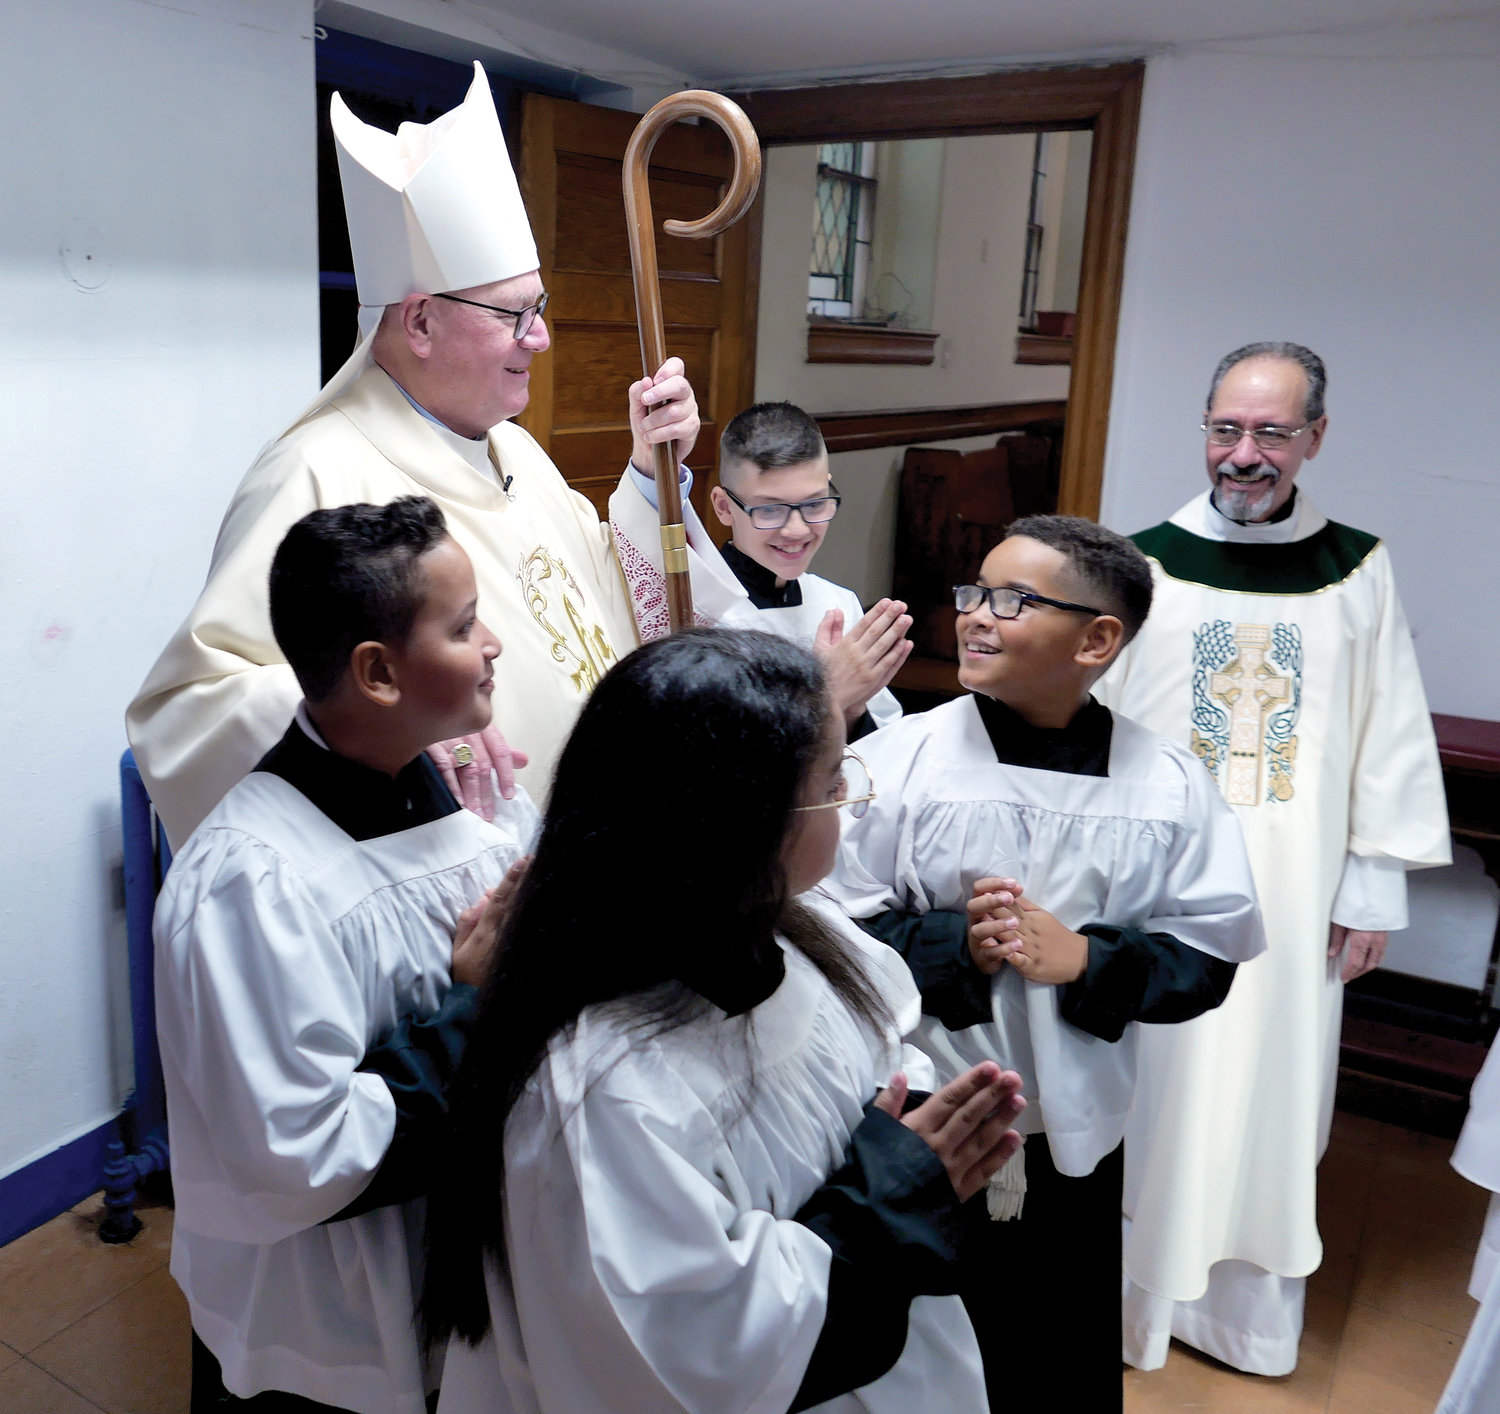 Cardinal Dolan meets with altar servers and Father Osiris Salcedo, S.D.B., administrator of St. Luke parish in the Bronx, before the start of Mass celebrating the 100th anniversary of St. Luke School Oct. 2.